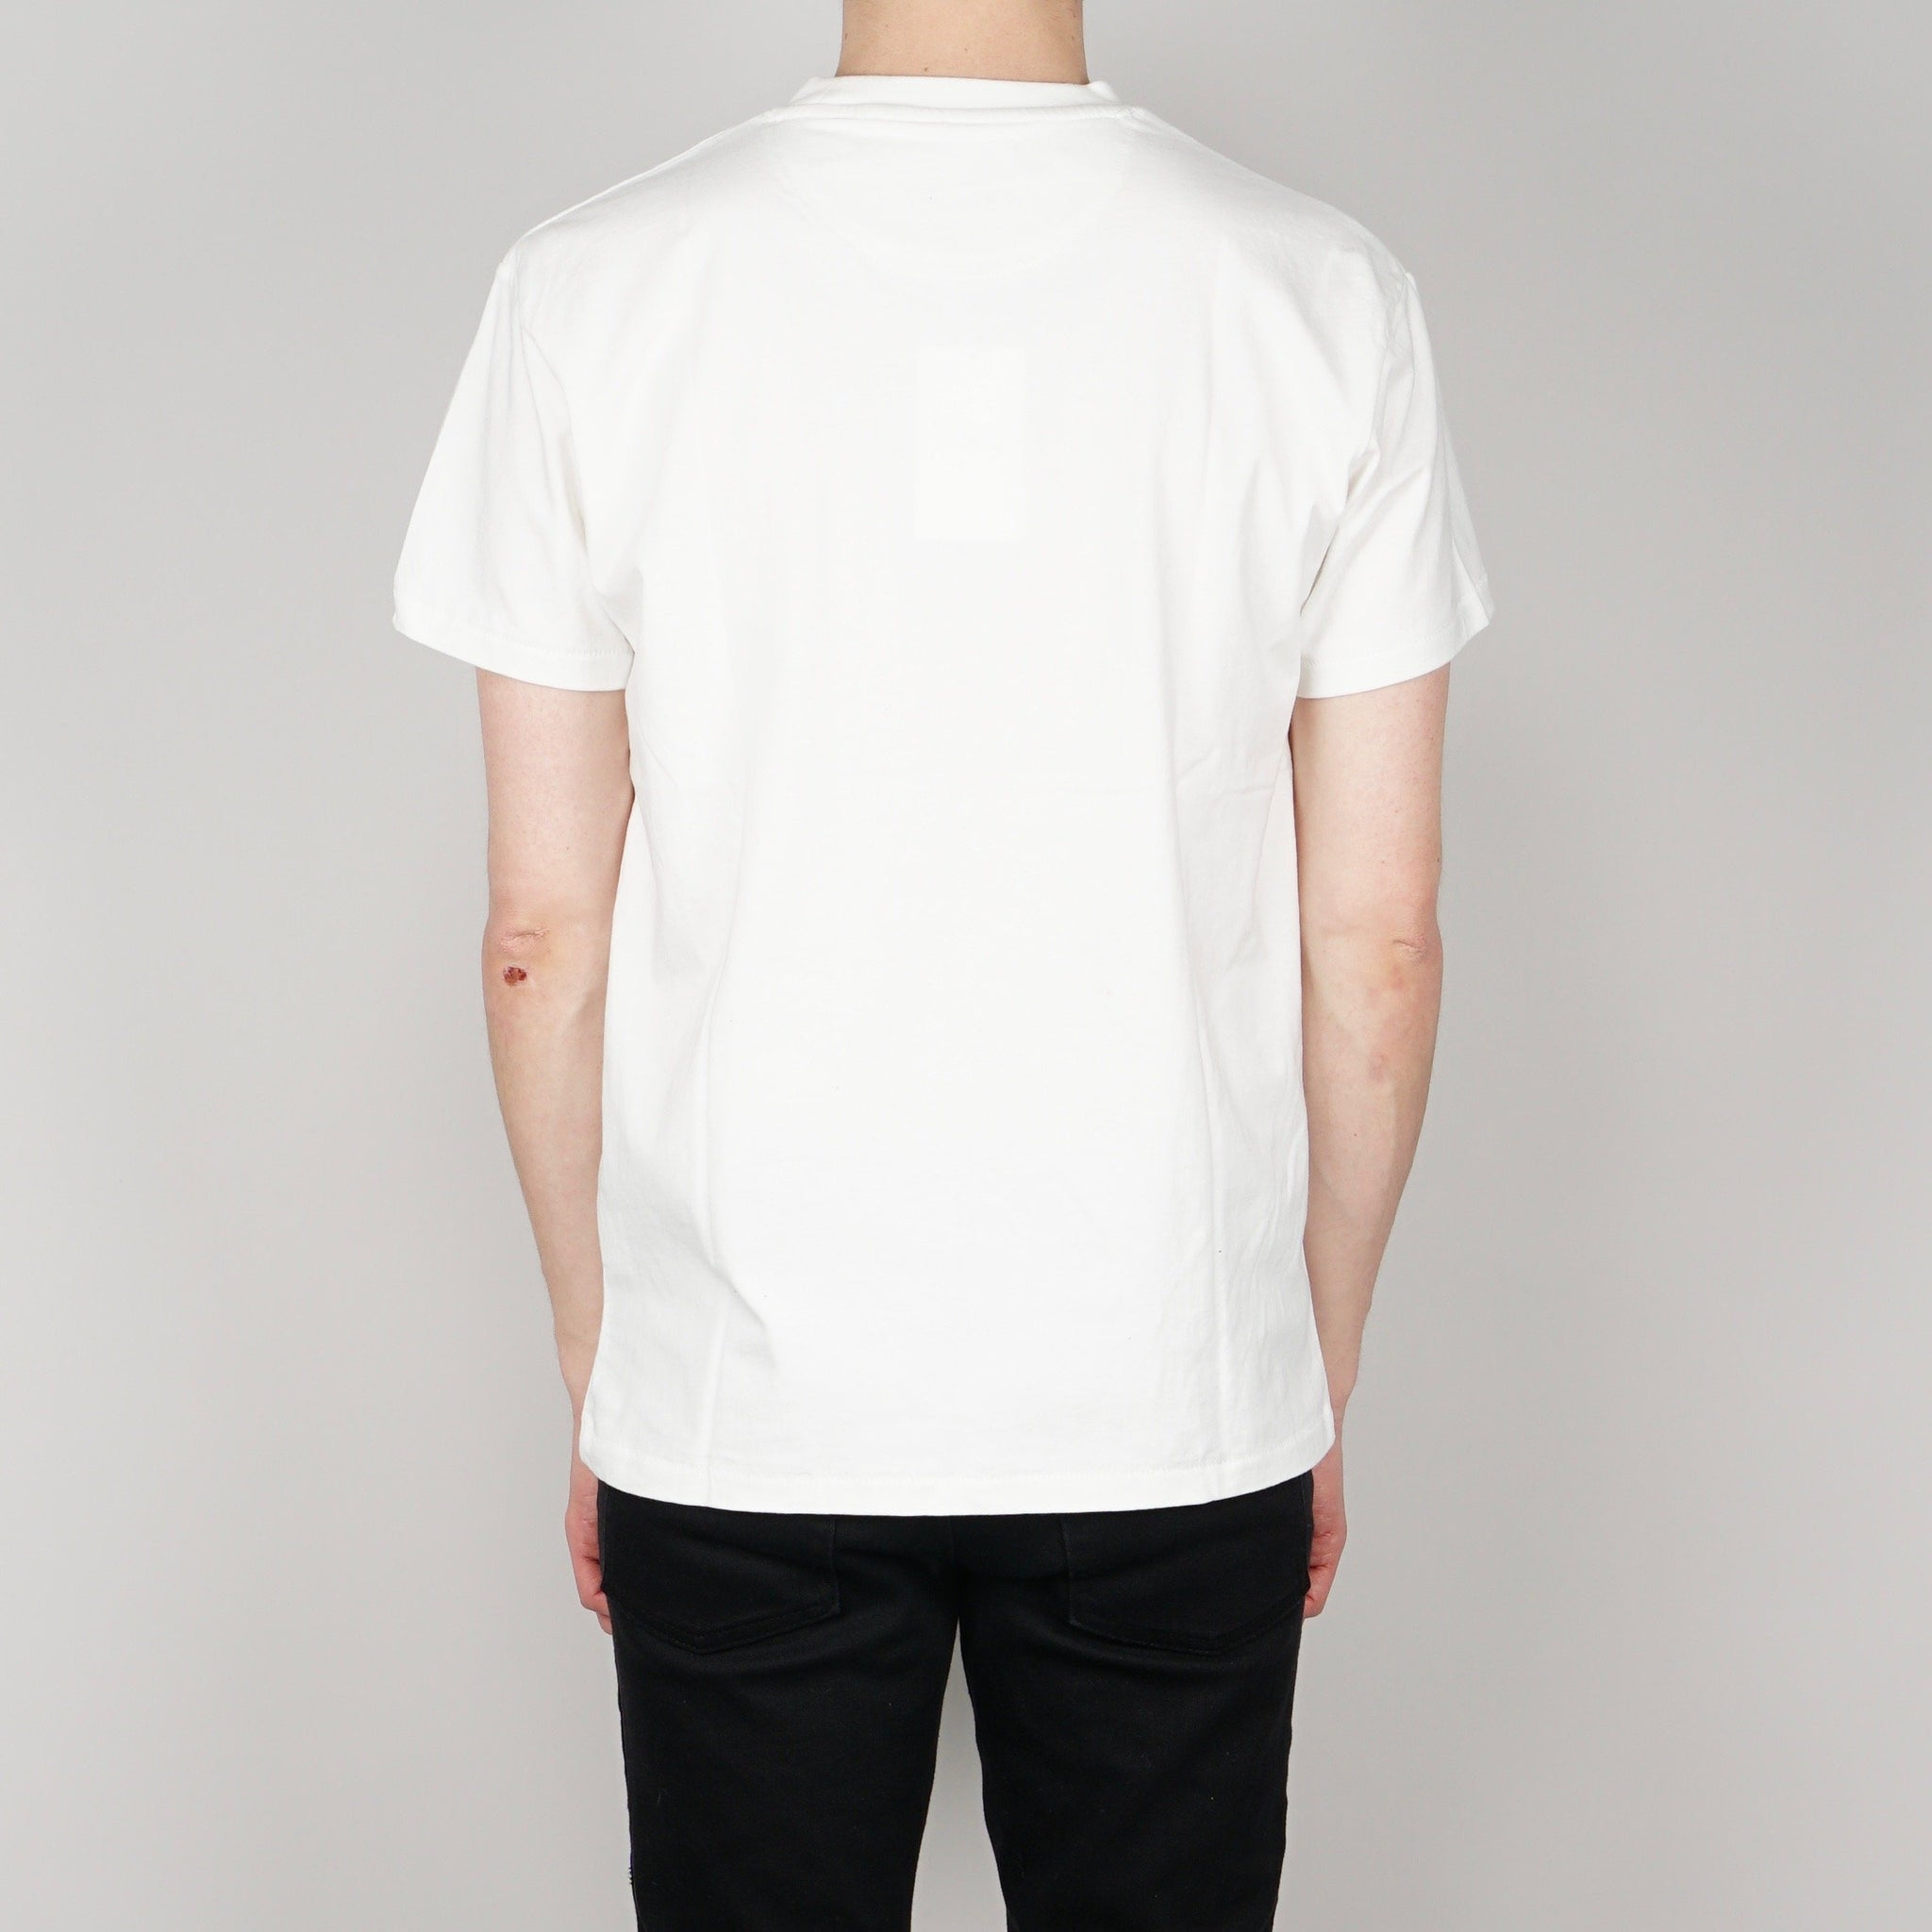 Avenue 411 t-shirt - White